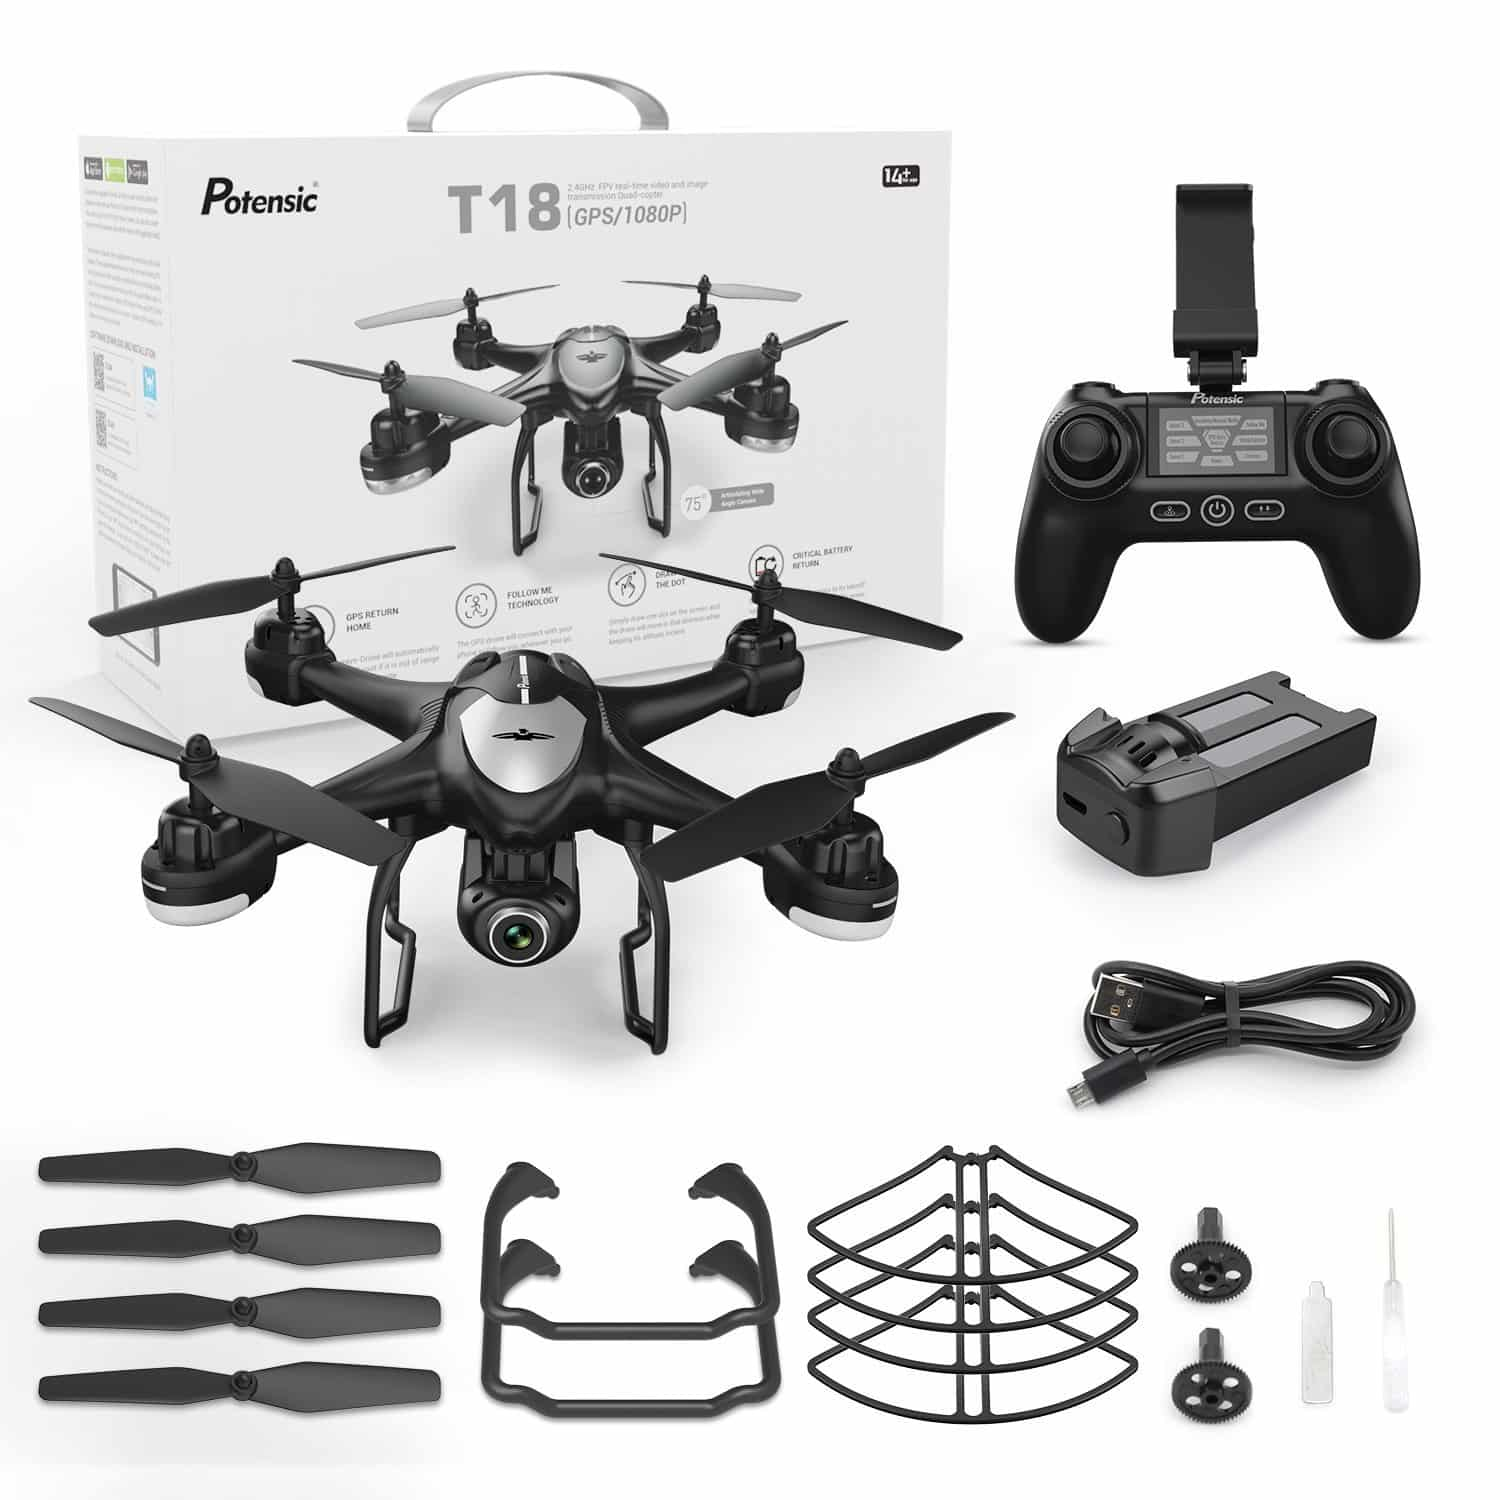 ☑Potensic T18 RC Drone with Camera …